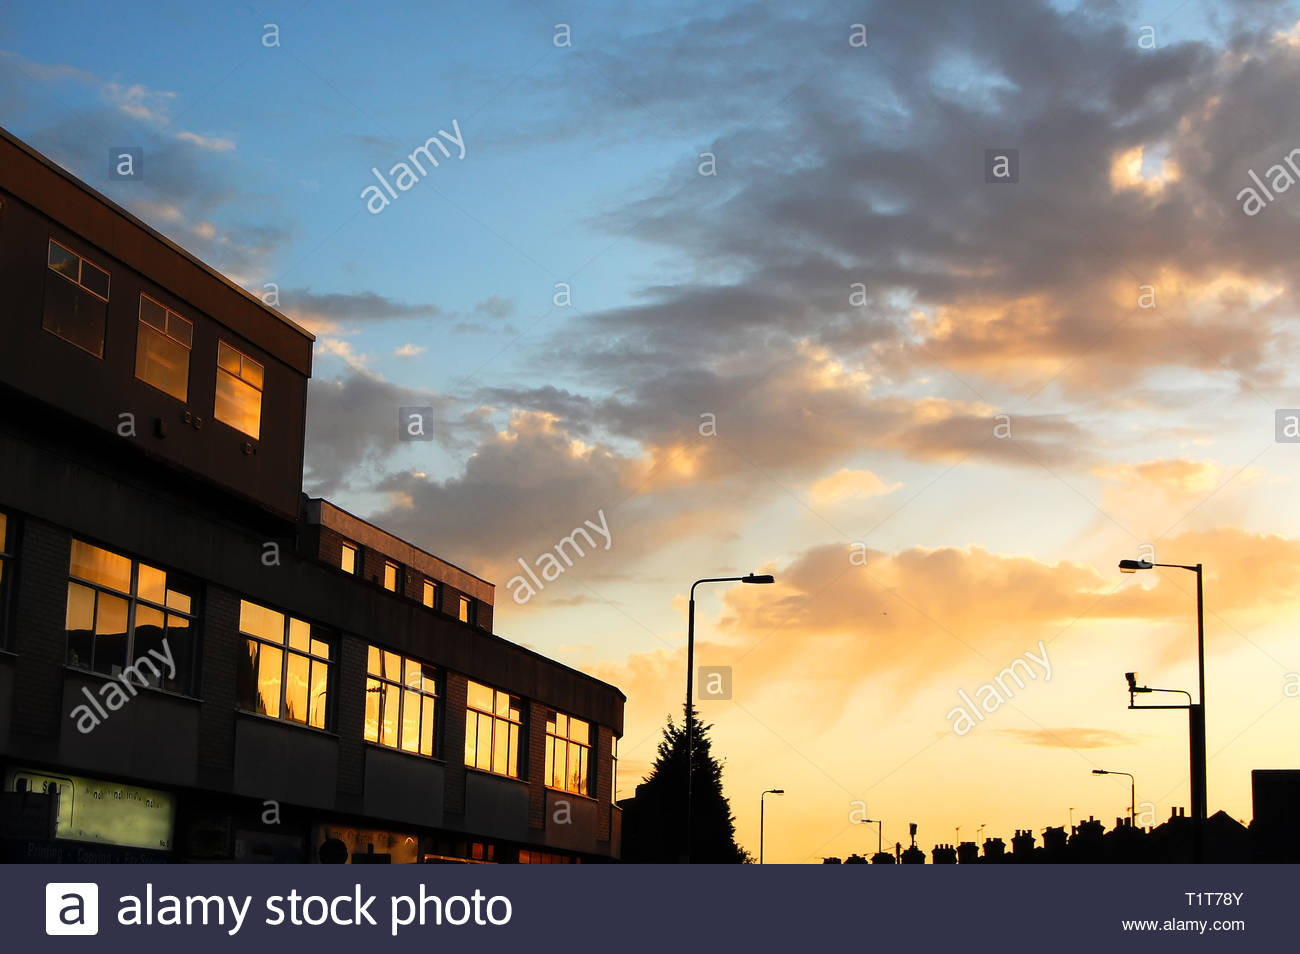 The sun sets over some London offices, with warm tones reflected in the building's windows. - Stock Image